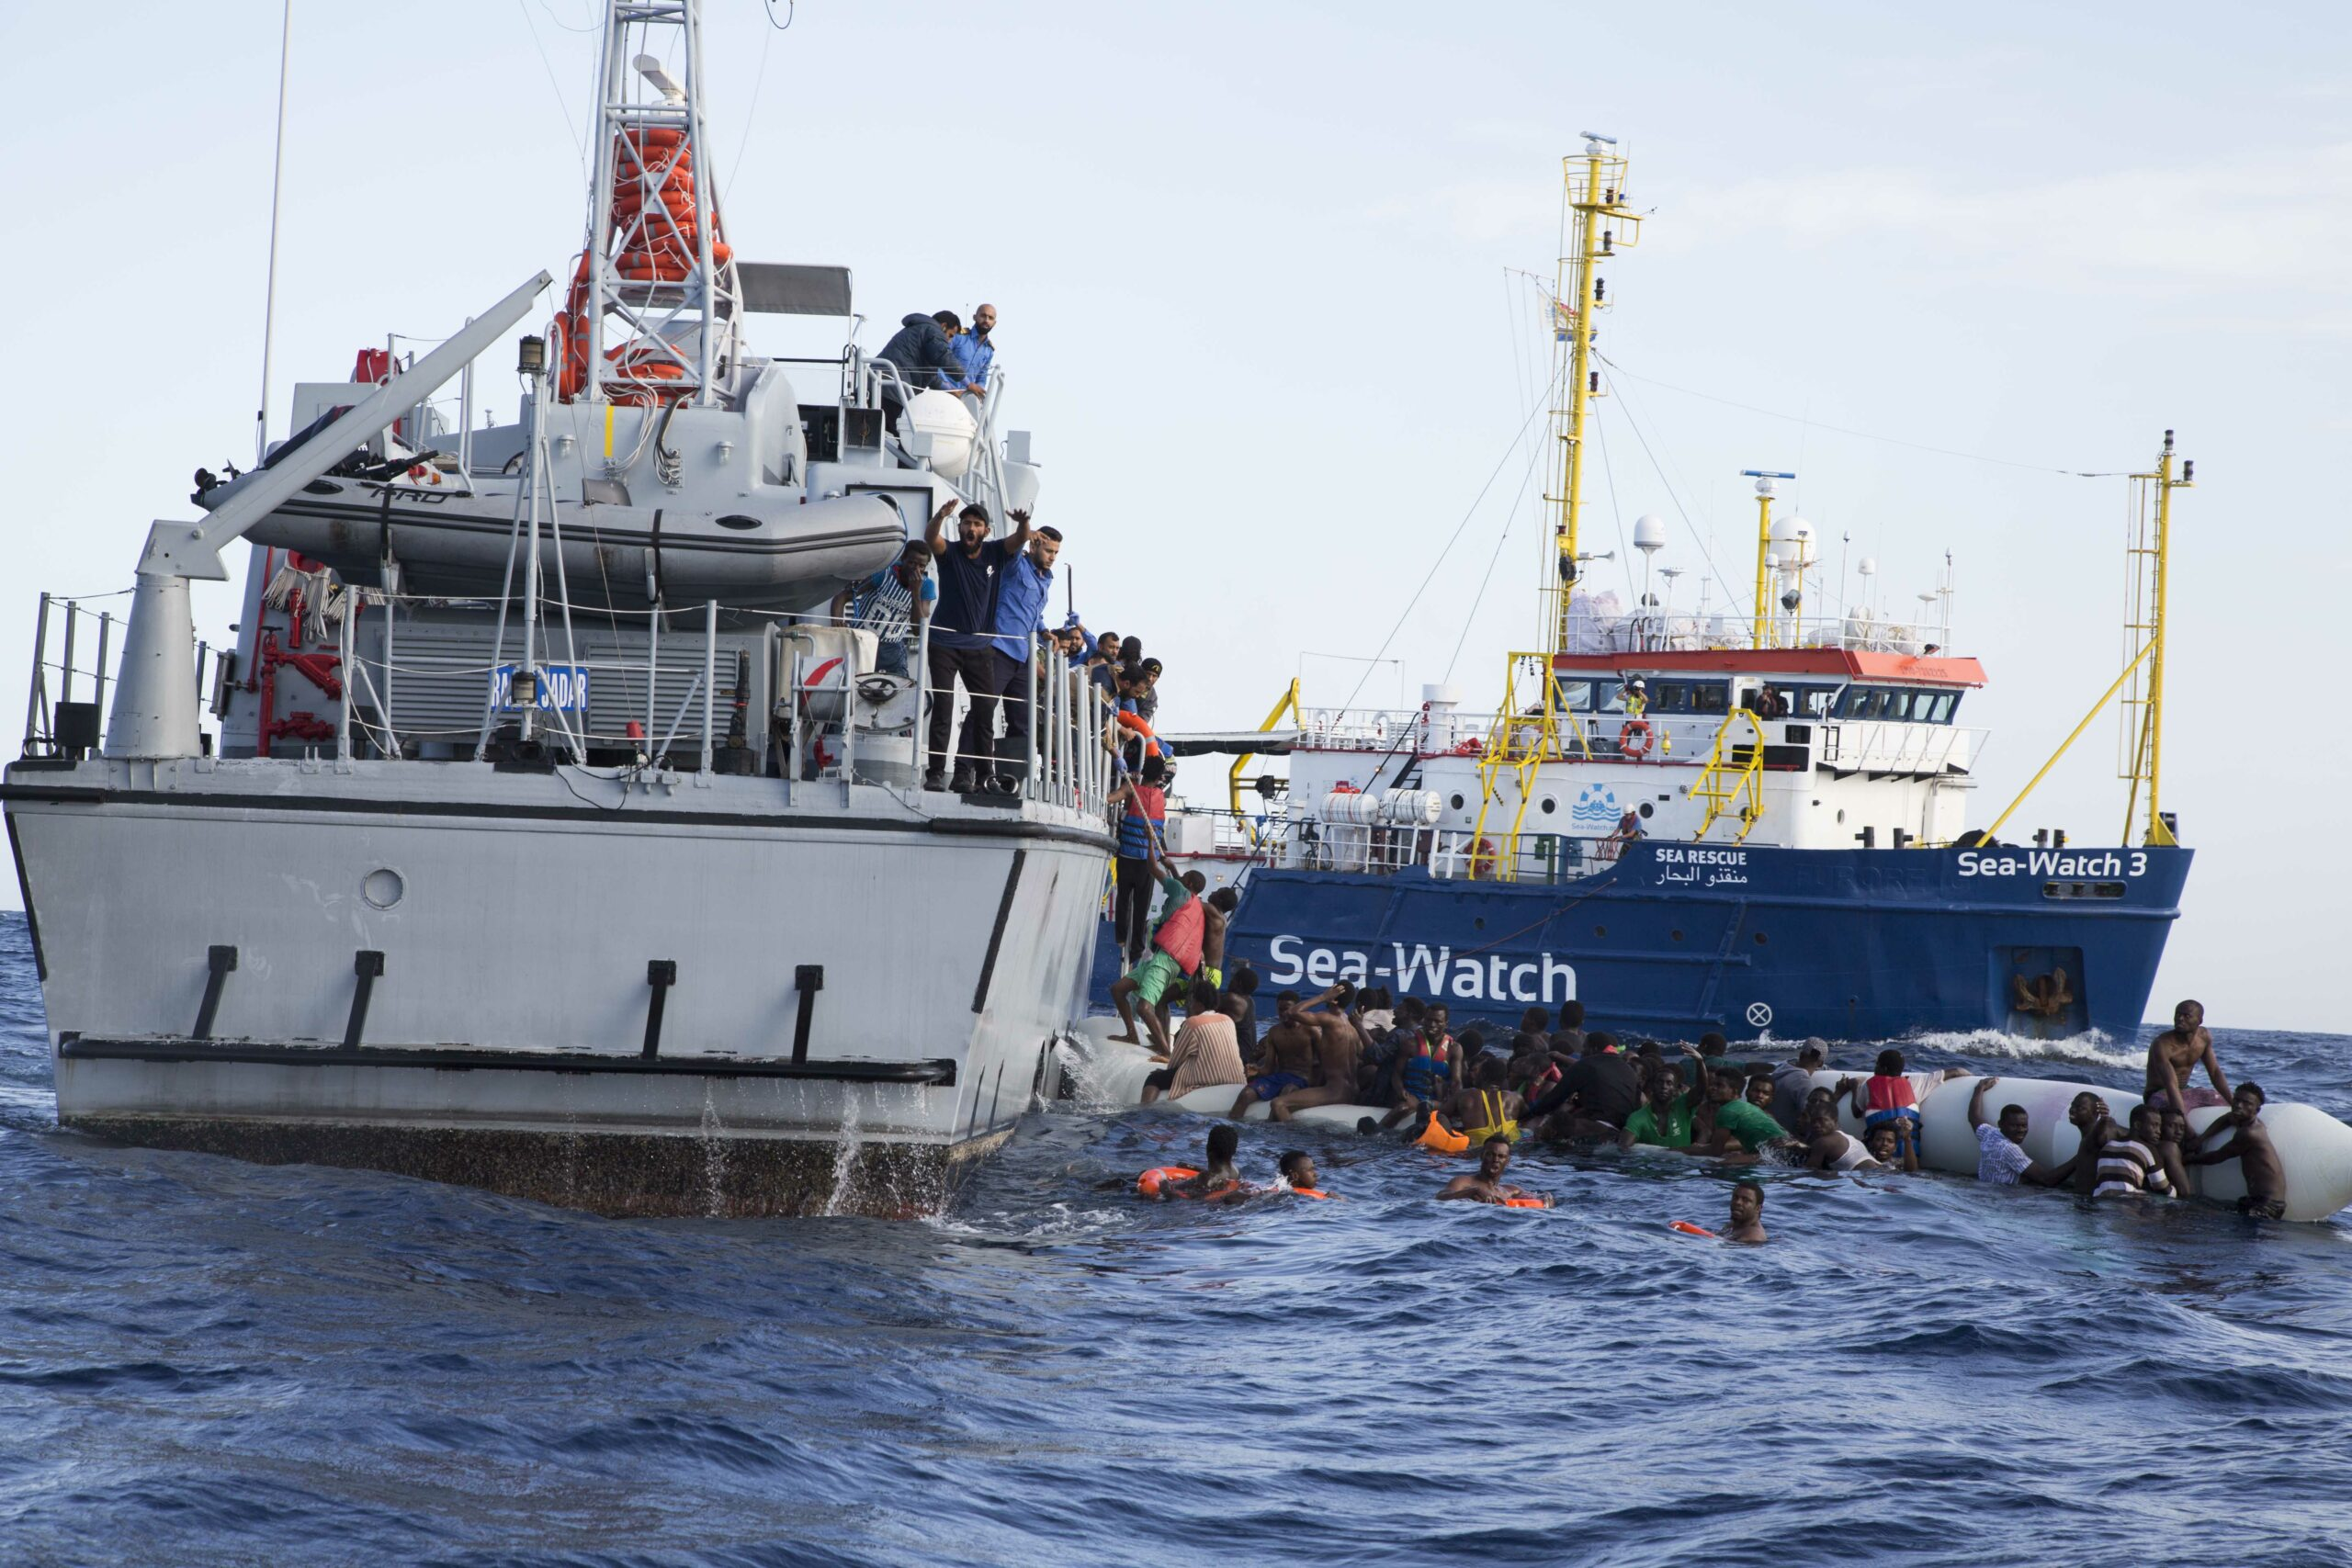 WhatsApp to Libya: How Frontex uses a trick to circumvent international law